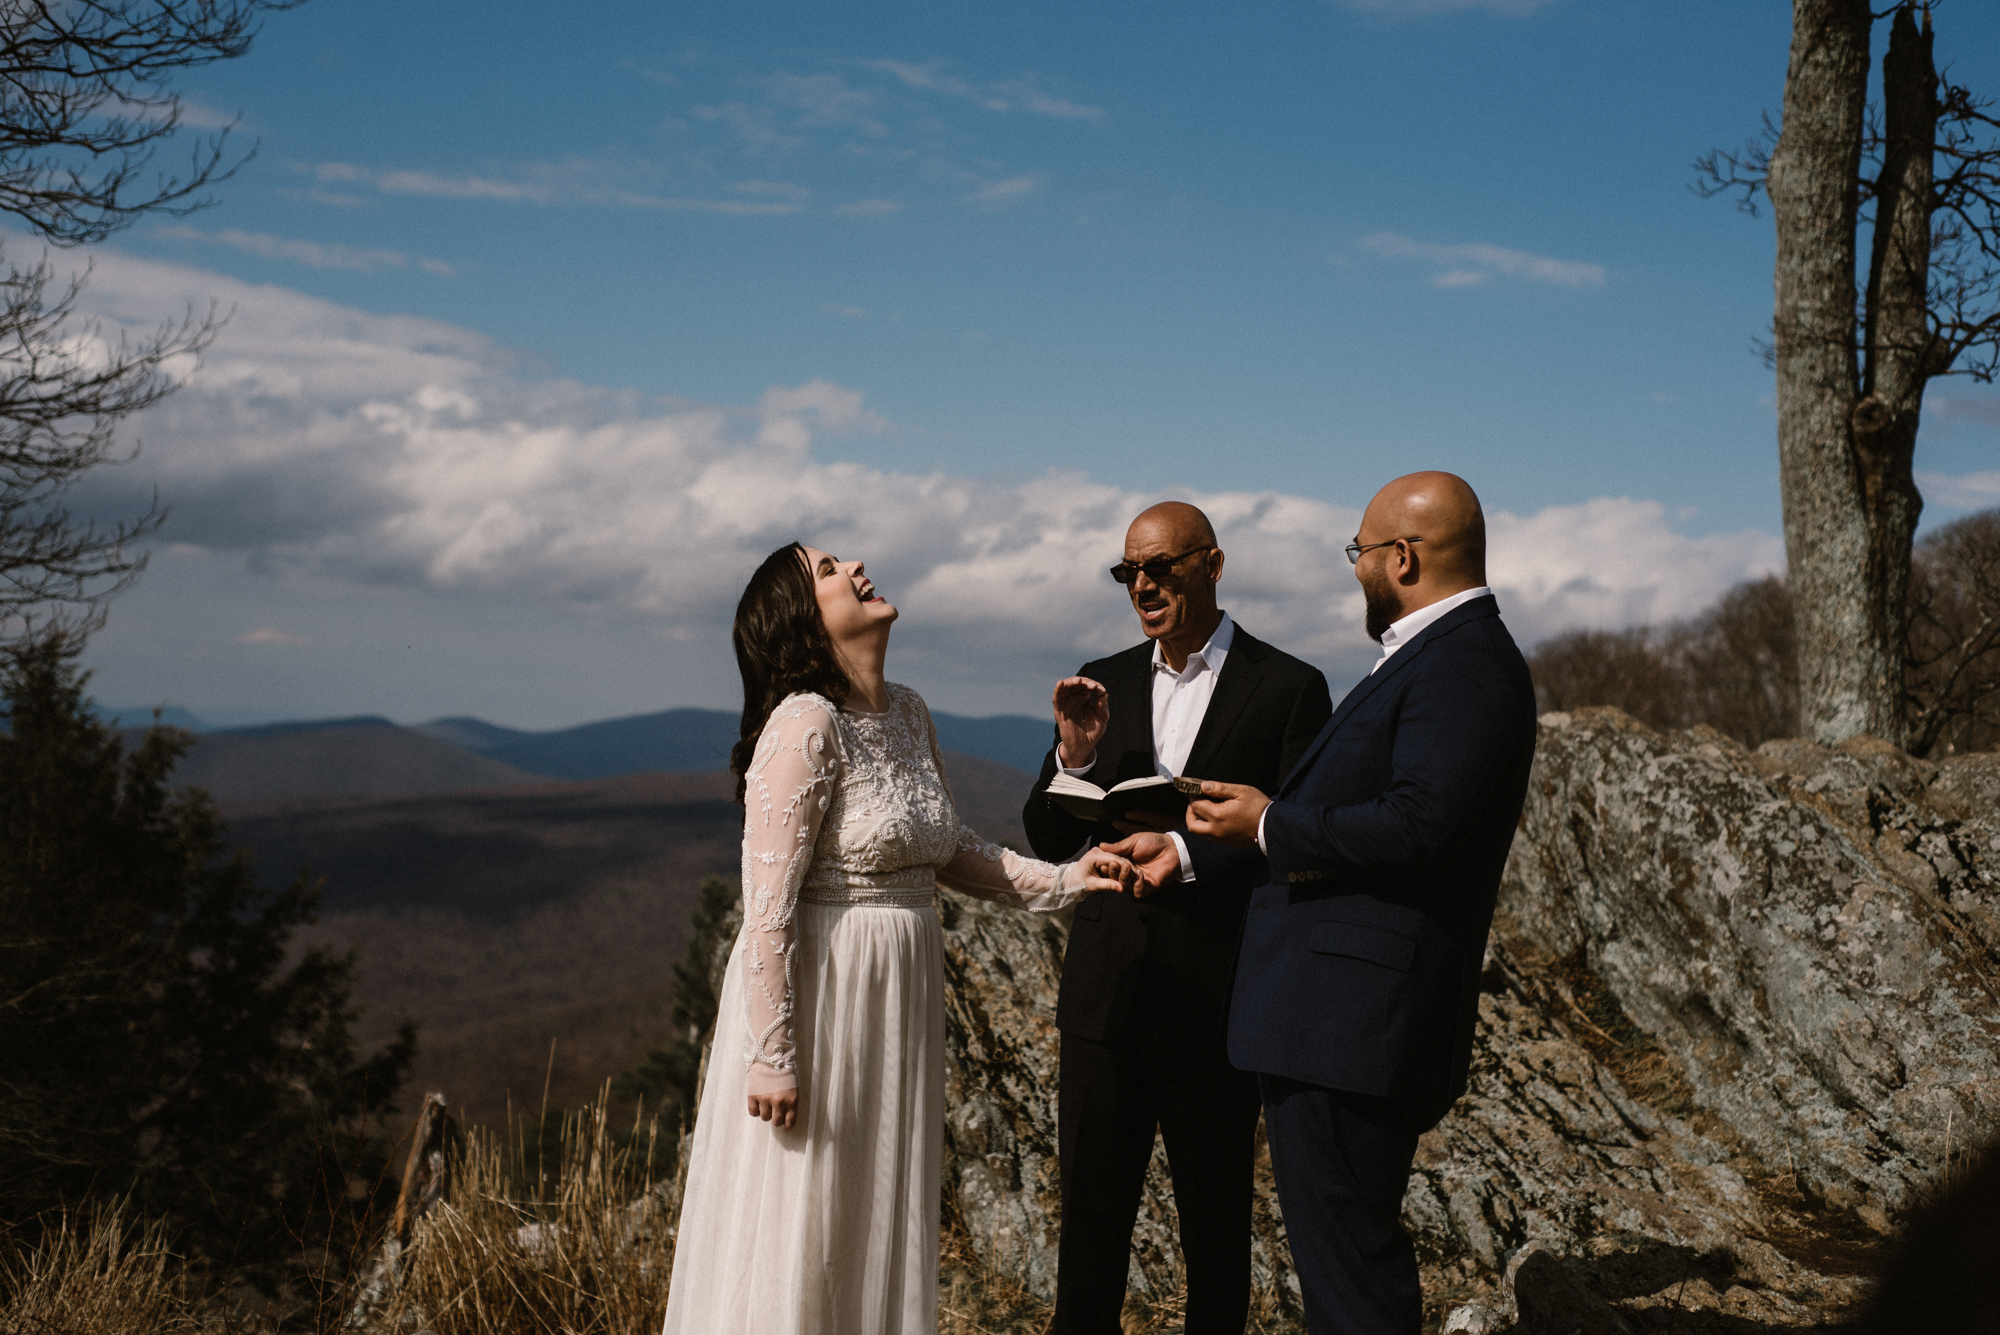 Emma and Jeddah - Intimate Luray Wedding - Shenandoah National Park Wedding - Adventure Elopement in Virginia - Shenandoah National Park Elopement_35.jpg